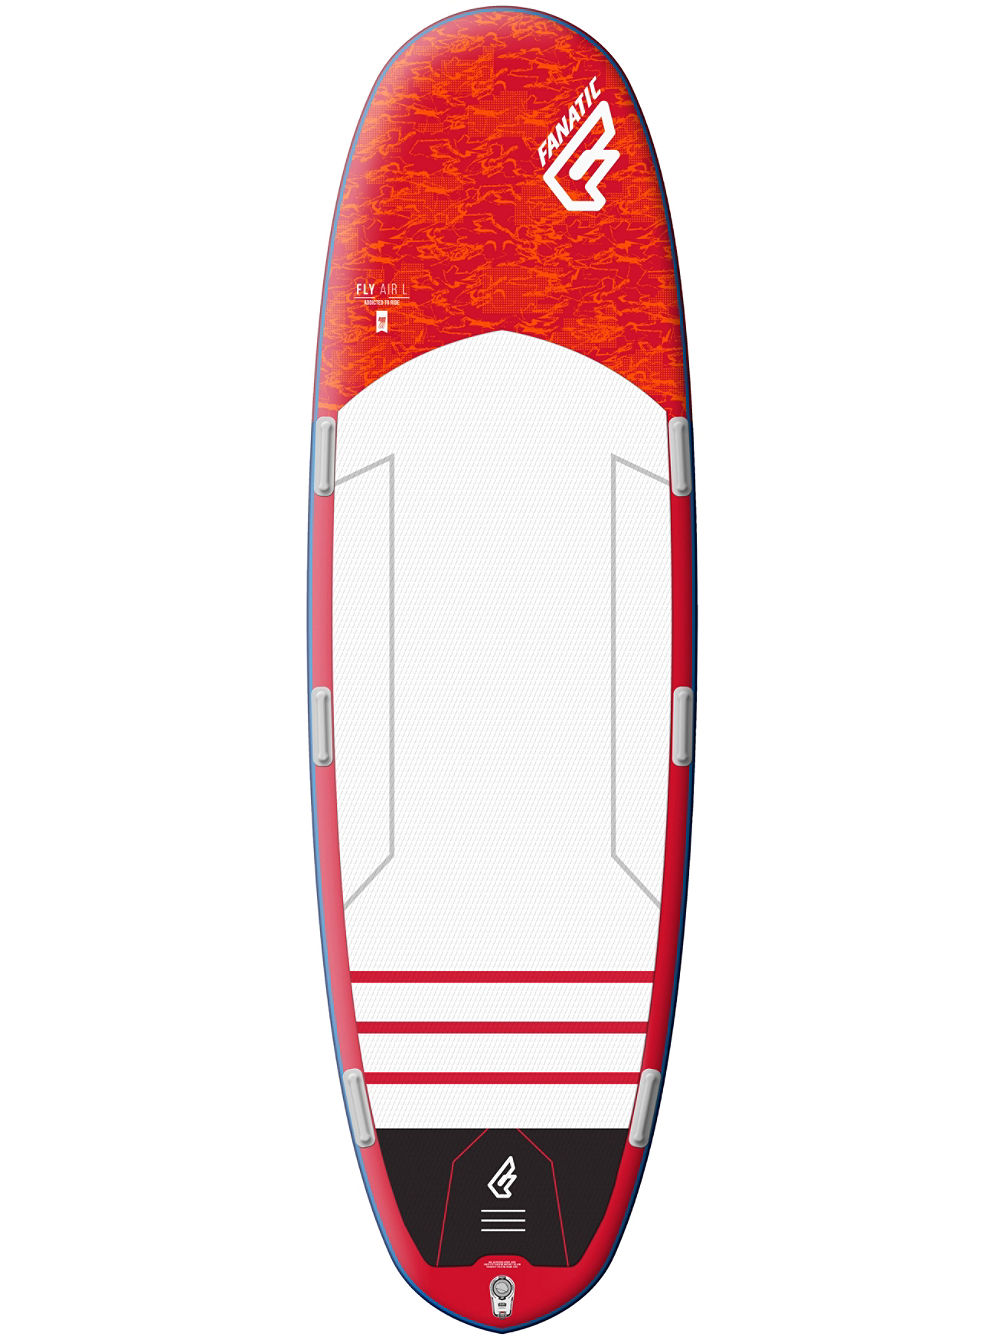 Fly Air L 17.x60 SUP Board